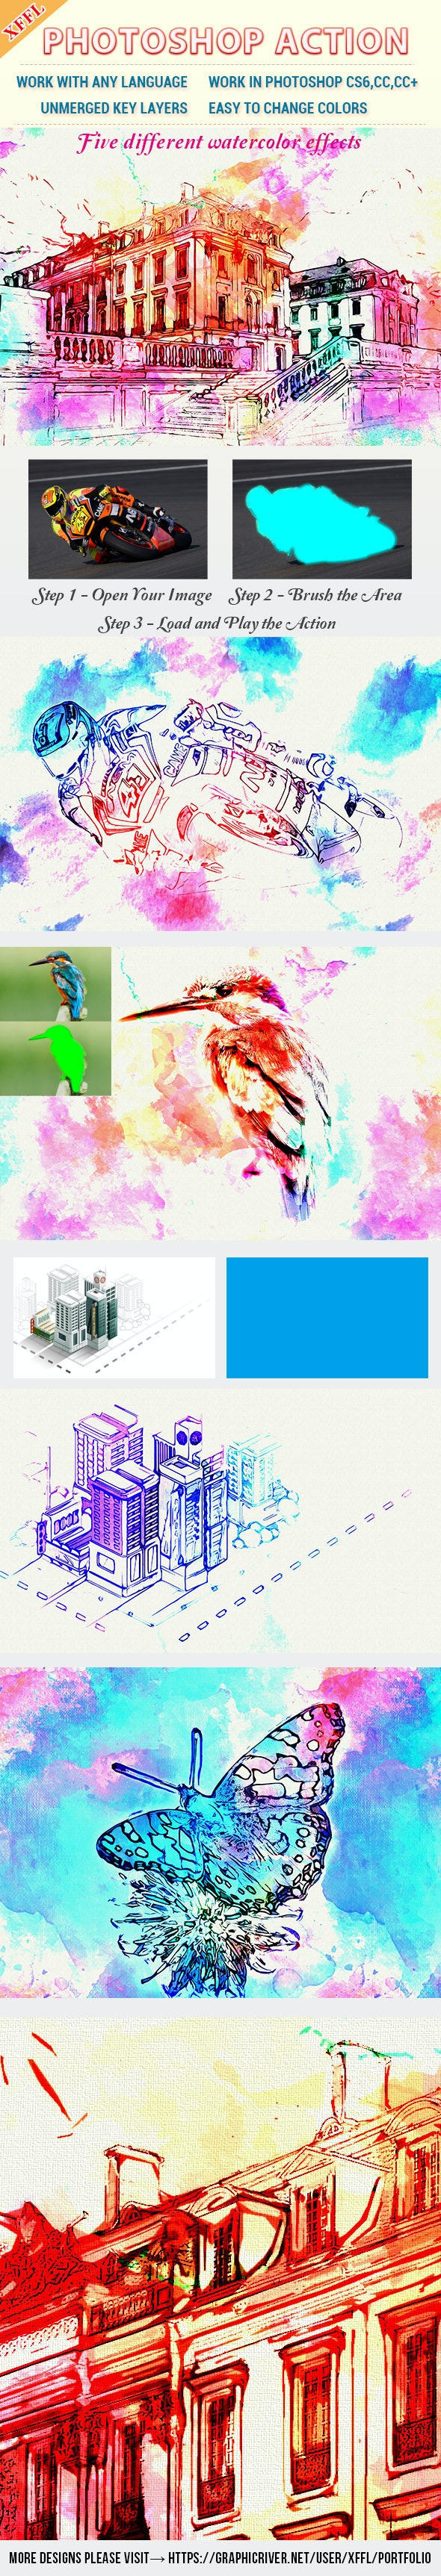 Watercolor Art V2 Photoshop Action - Photo Effects Actions